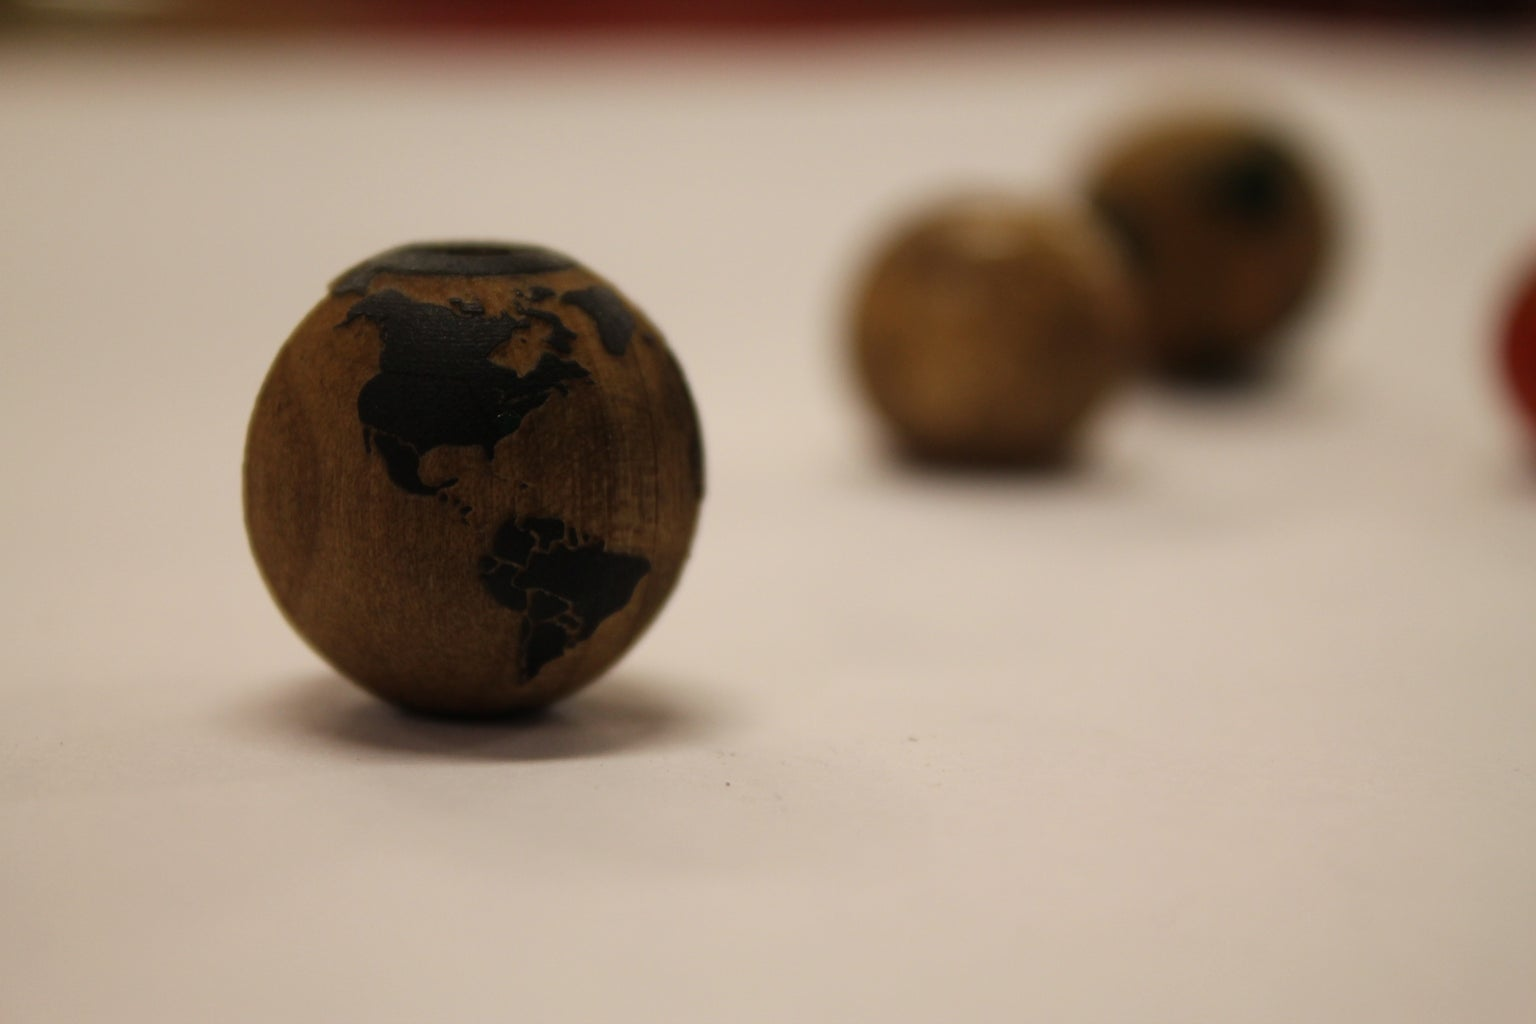 Think of Things That Would Look Cool Etched Onto Beads...